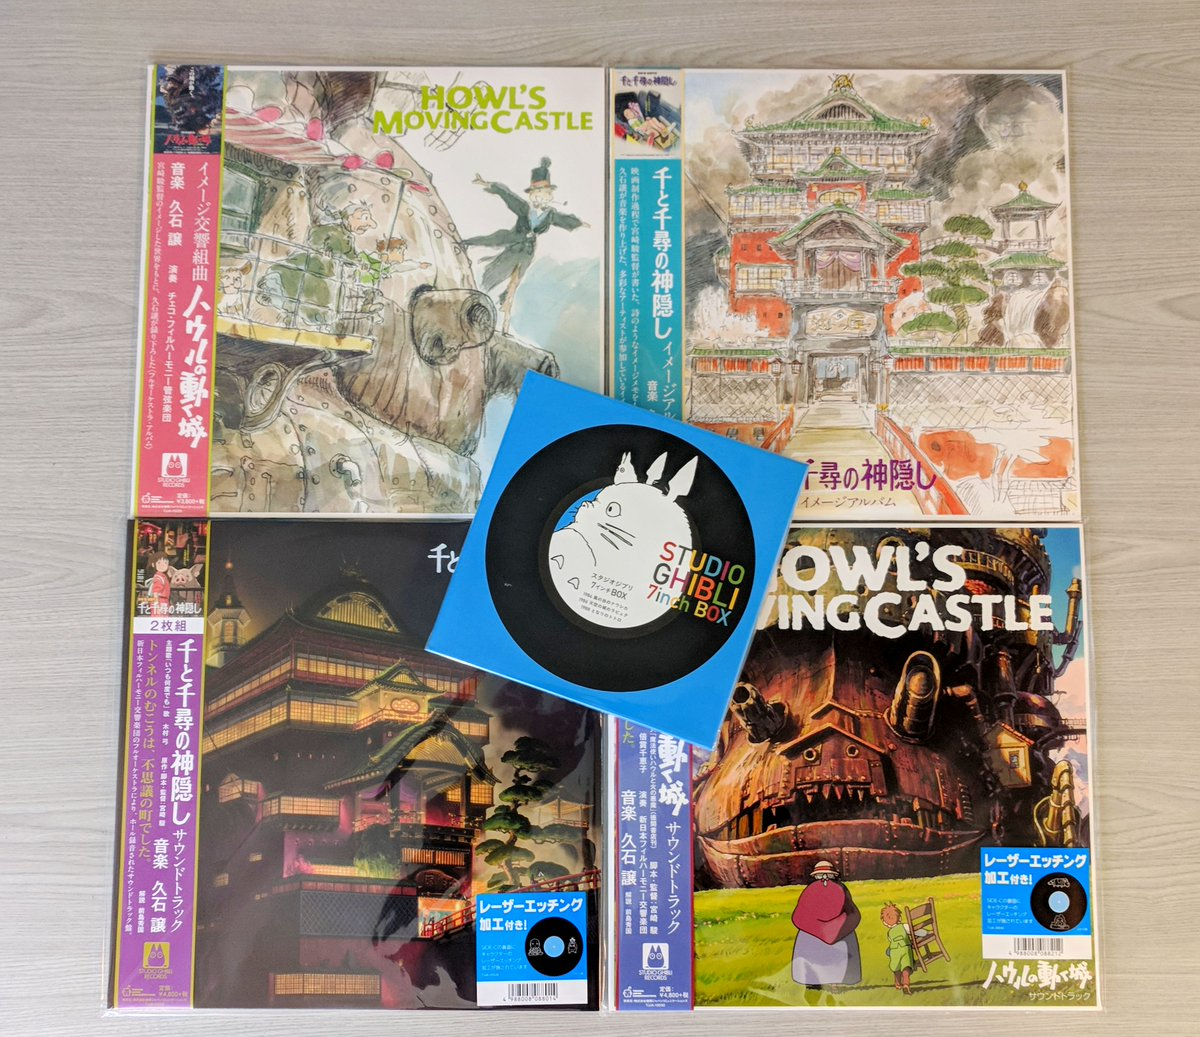 JUST IN: Joe Hisaishi's Studio Ghibli Soundtracks We've got loads of goodies for you Ghibli fans. Not only have we got the striking scores for the classic animations 'Spirited Away' & 'Howl's Moving Castle', the sought-after 7-inch box set has returned. normanrecords.com/artist/33530-j…